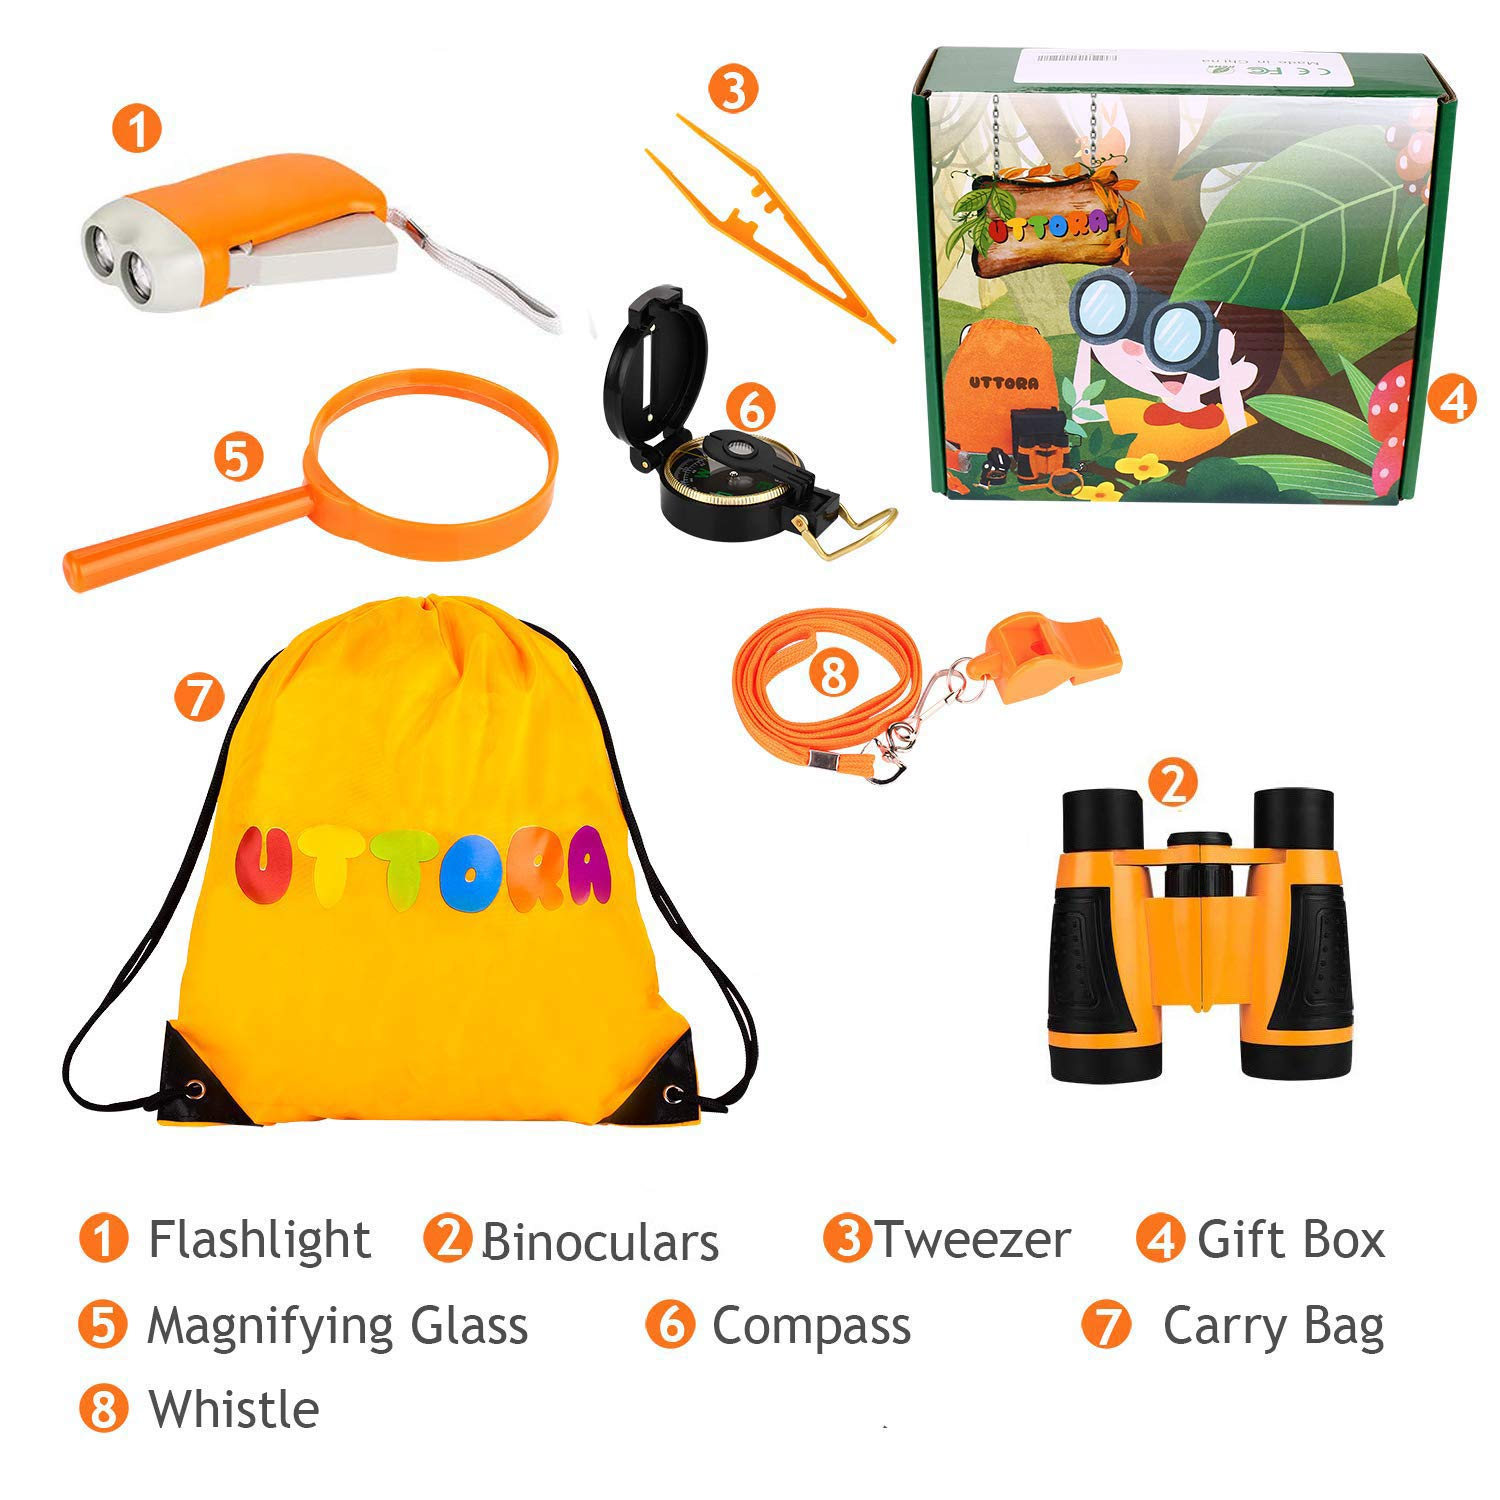 UTTORA Kids Binoculars Toy Set, Outdoor Exploration Set, Best Gift for 3 4 5 6-12 Year Old Boy and Girl, Kids Adventure Kit, Children Outdoor Educational Kit